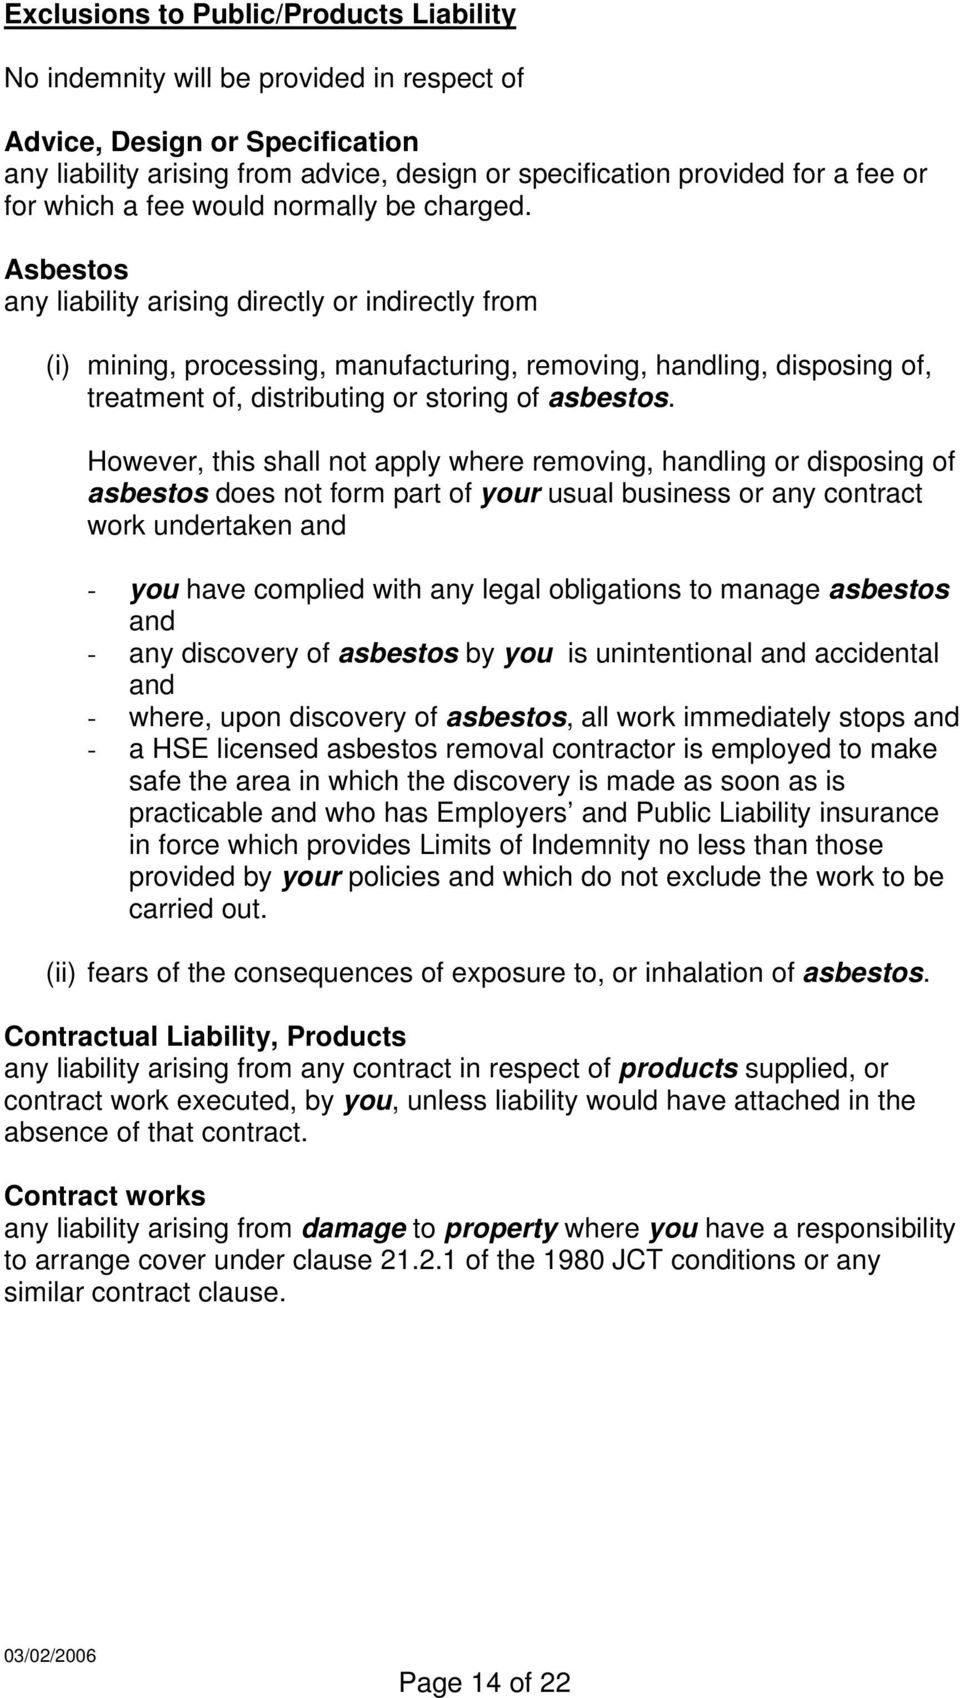 Asbestos any liability arising directly or indirectly from (i) mining, processing, manufacturing, removing, handling, disposing of, treatment of, distributing or storing of asbestos.